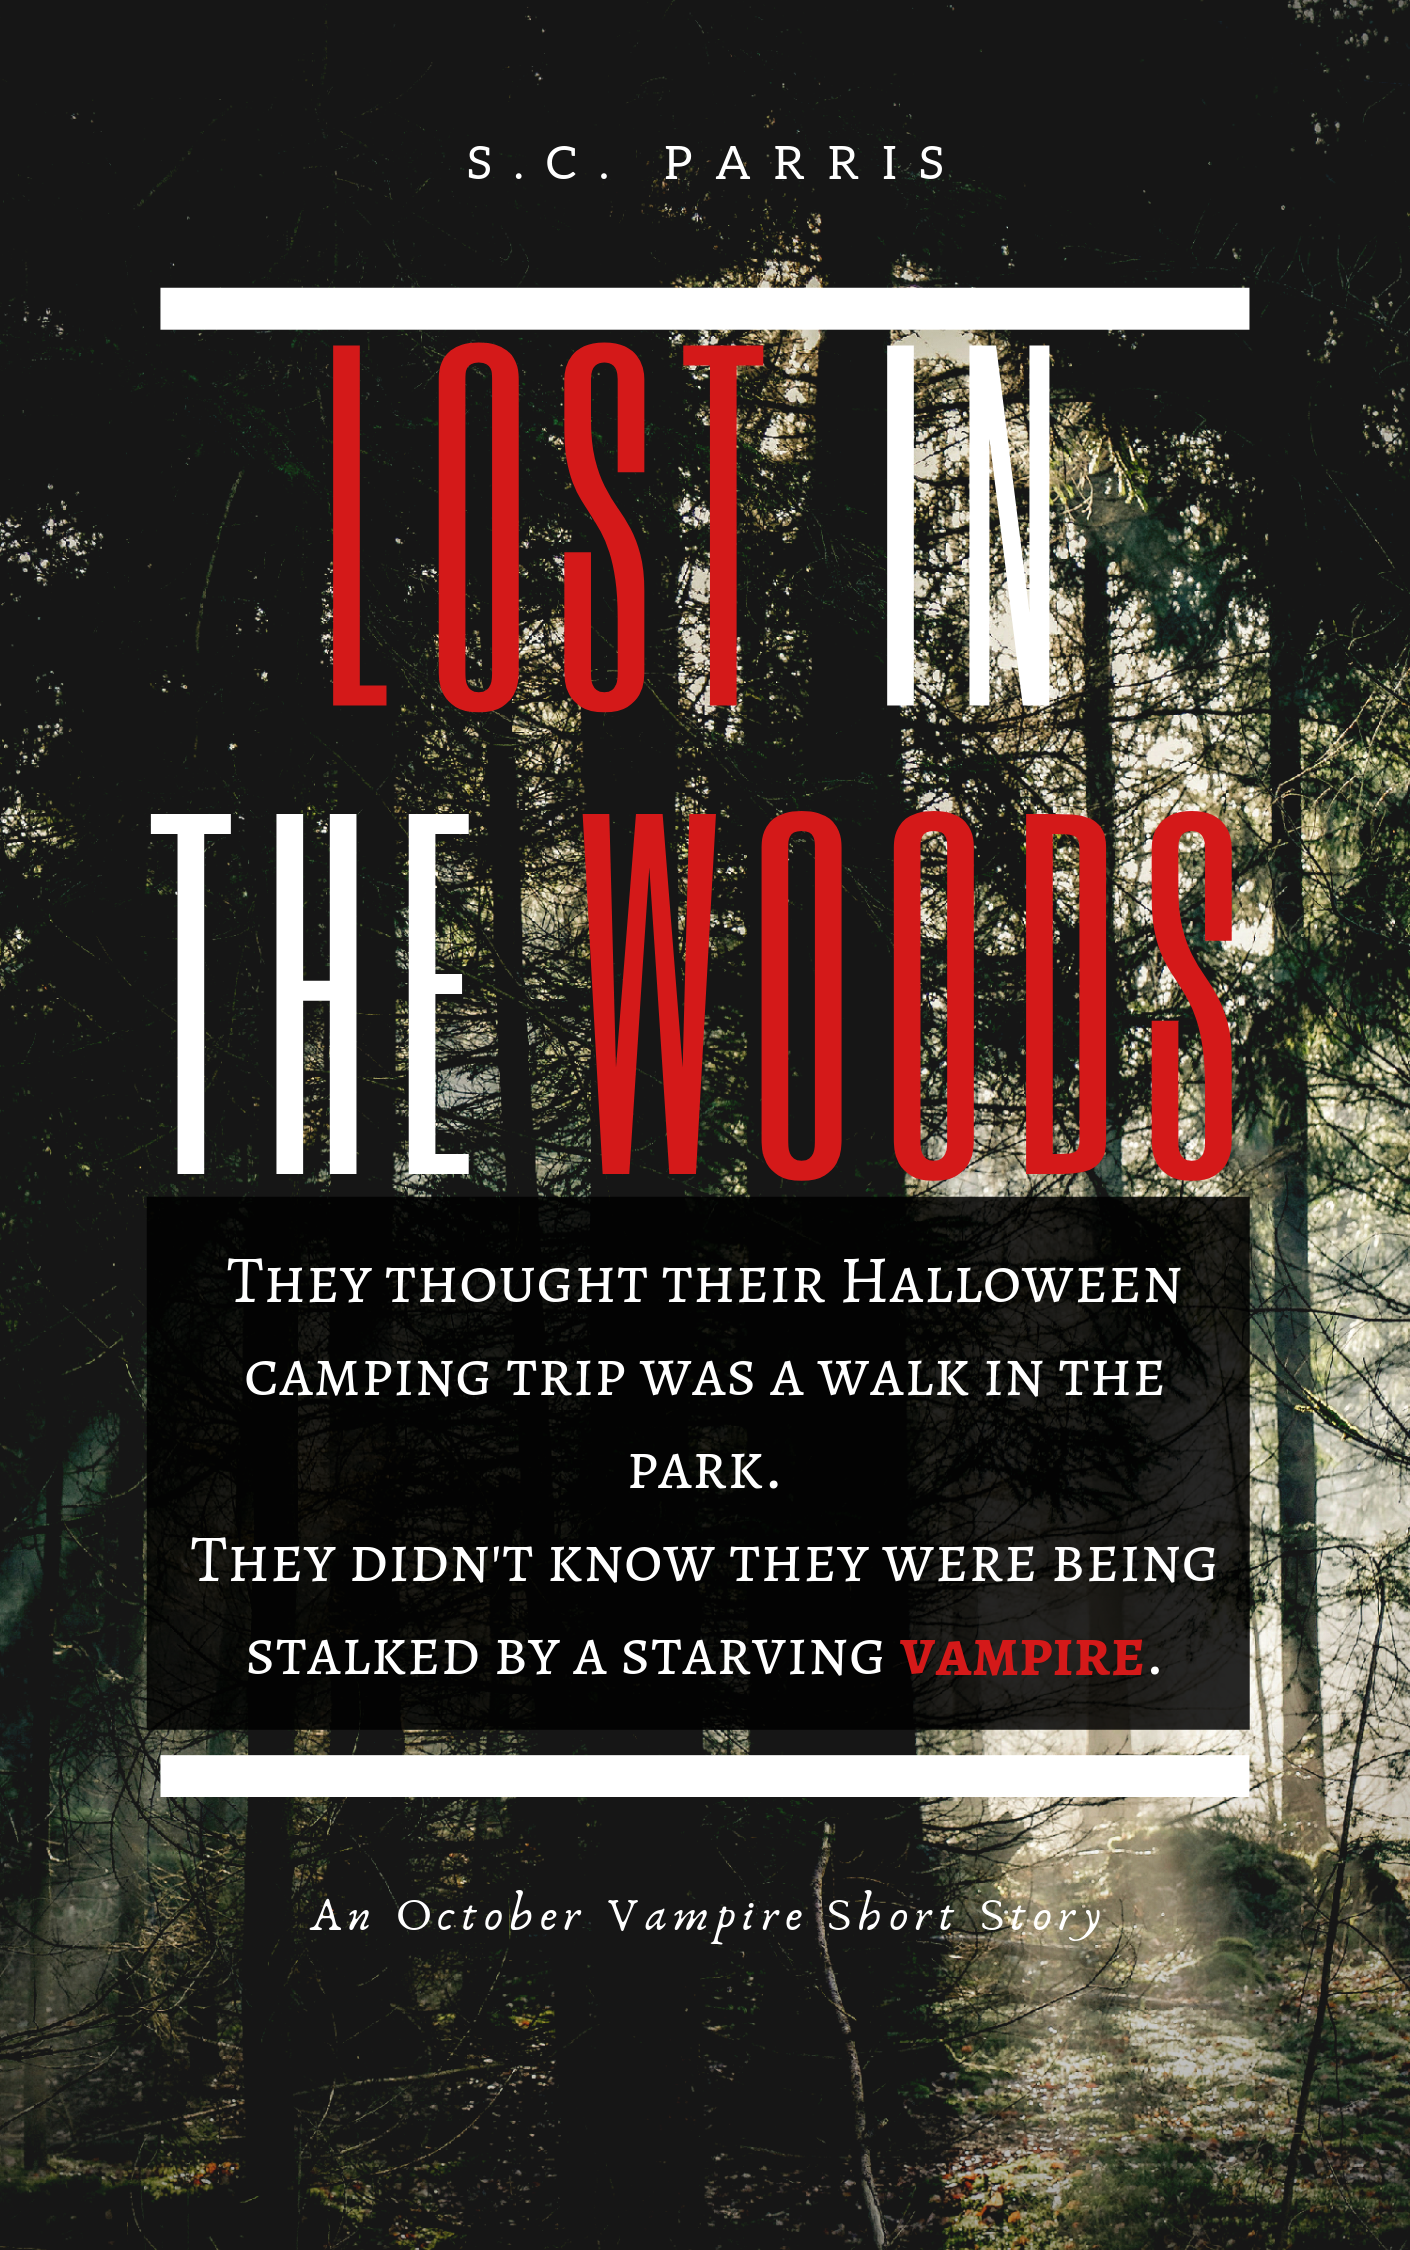 - LOST IN THE WOODS: An October Vampire Short Story: October 201918+ [TW: Blood]When Timothy, Tim for short, and his girlfriend Jessica go camping on Halloween night, Tim has plans to ask a very important question.The question he'll be asking, before the night is through, however, is